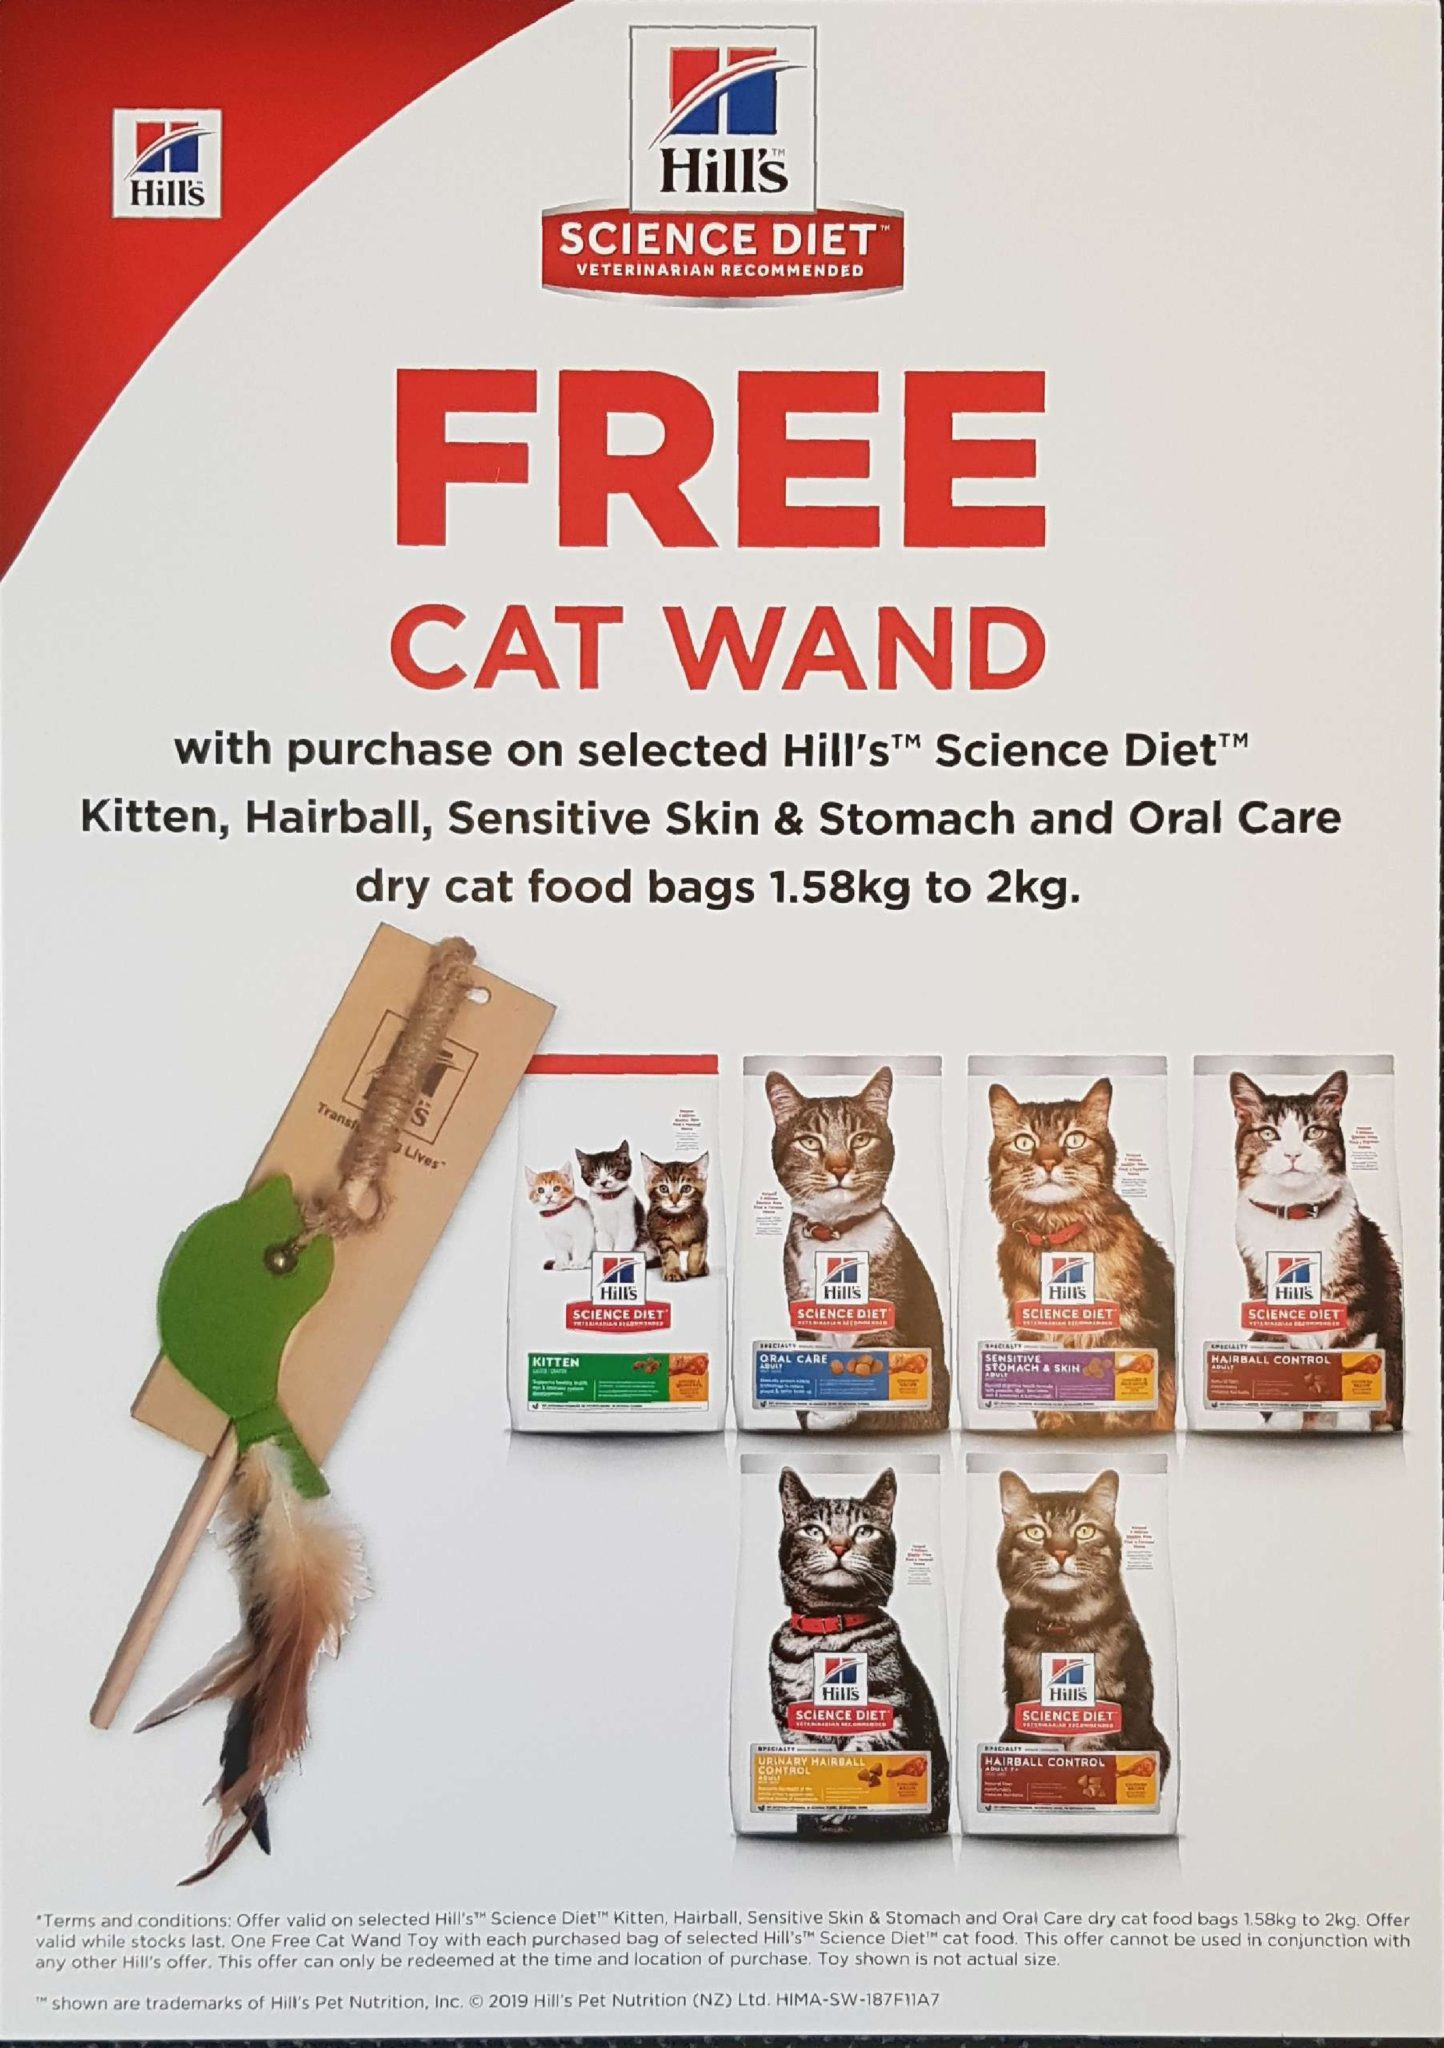 FREE Cat Wand With Selected Hills Science Diet 1.58kg – 2kg